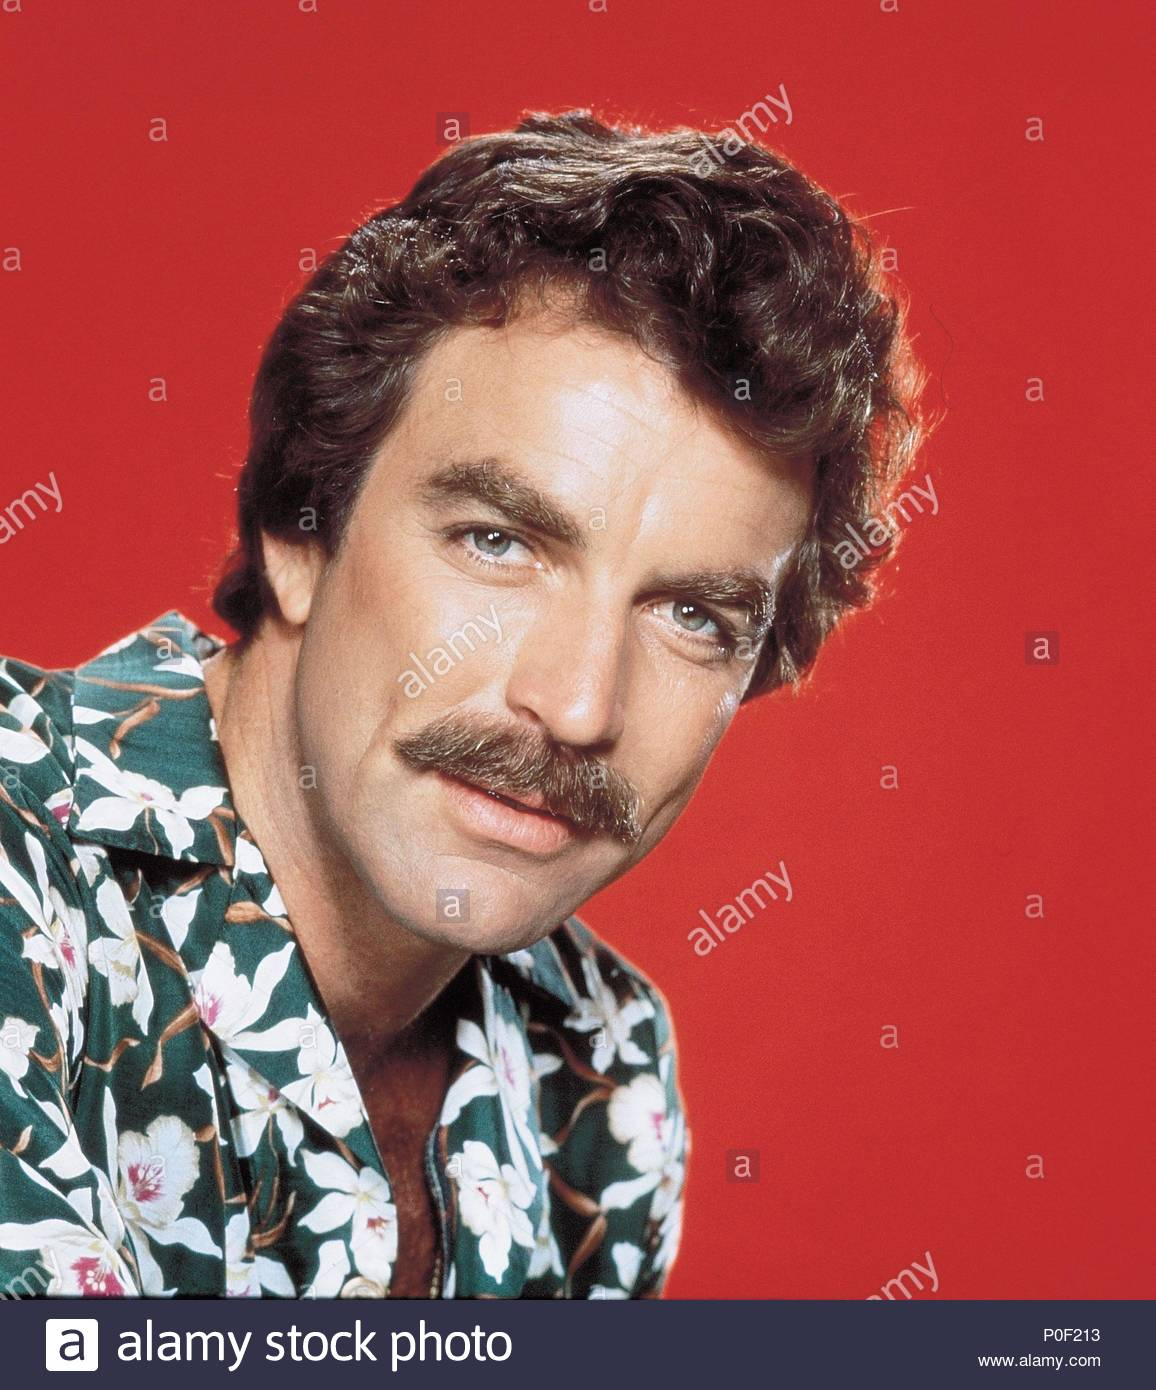 b37b1247cfbe2 Tom Selleck Stock Photos   Tom Selleck Stock Images - Alamy